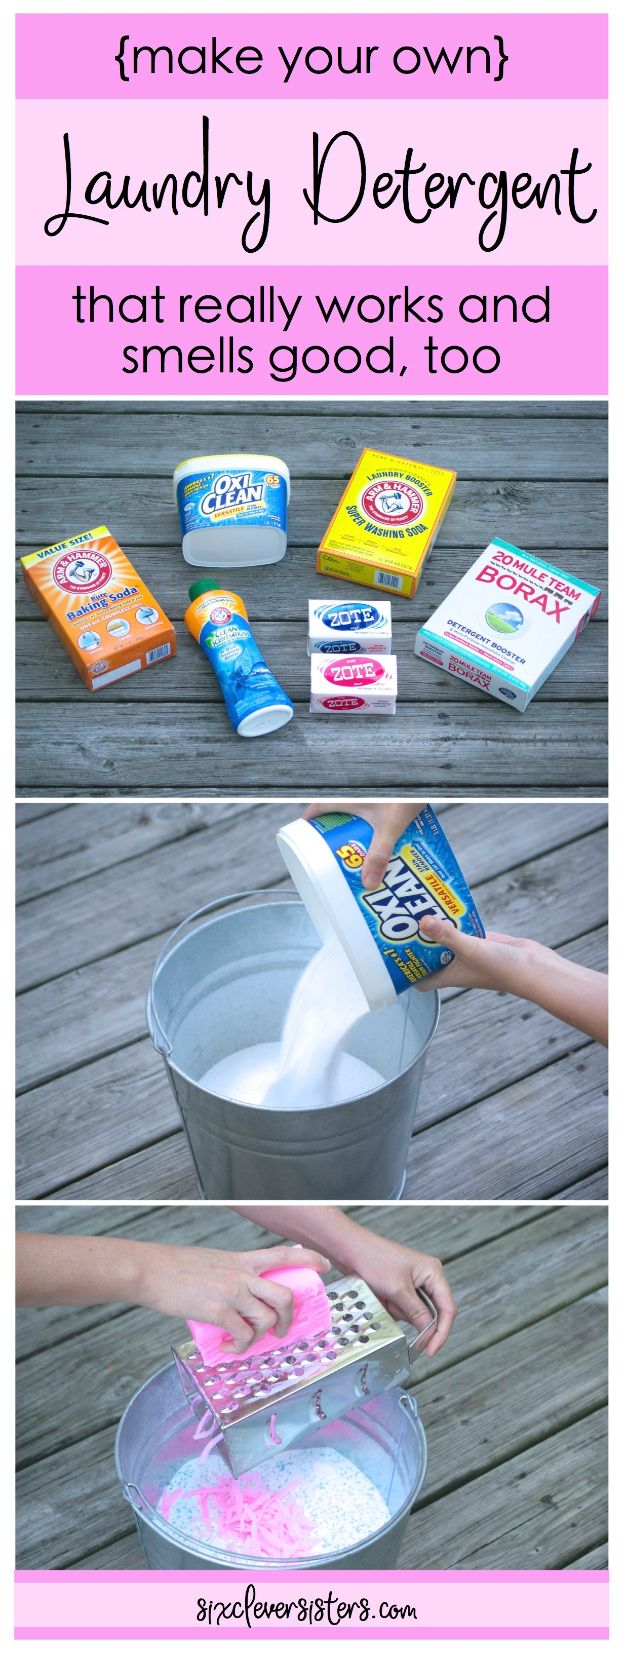 Laundry Detergent Recipes - Make Your Own Powdered Laundry Detergent - DIY Detergents and Cleaning Recipe Tutorials for Homemade Inexpensive Cleaners You Can Make At Home #recipes #laundry